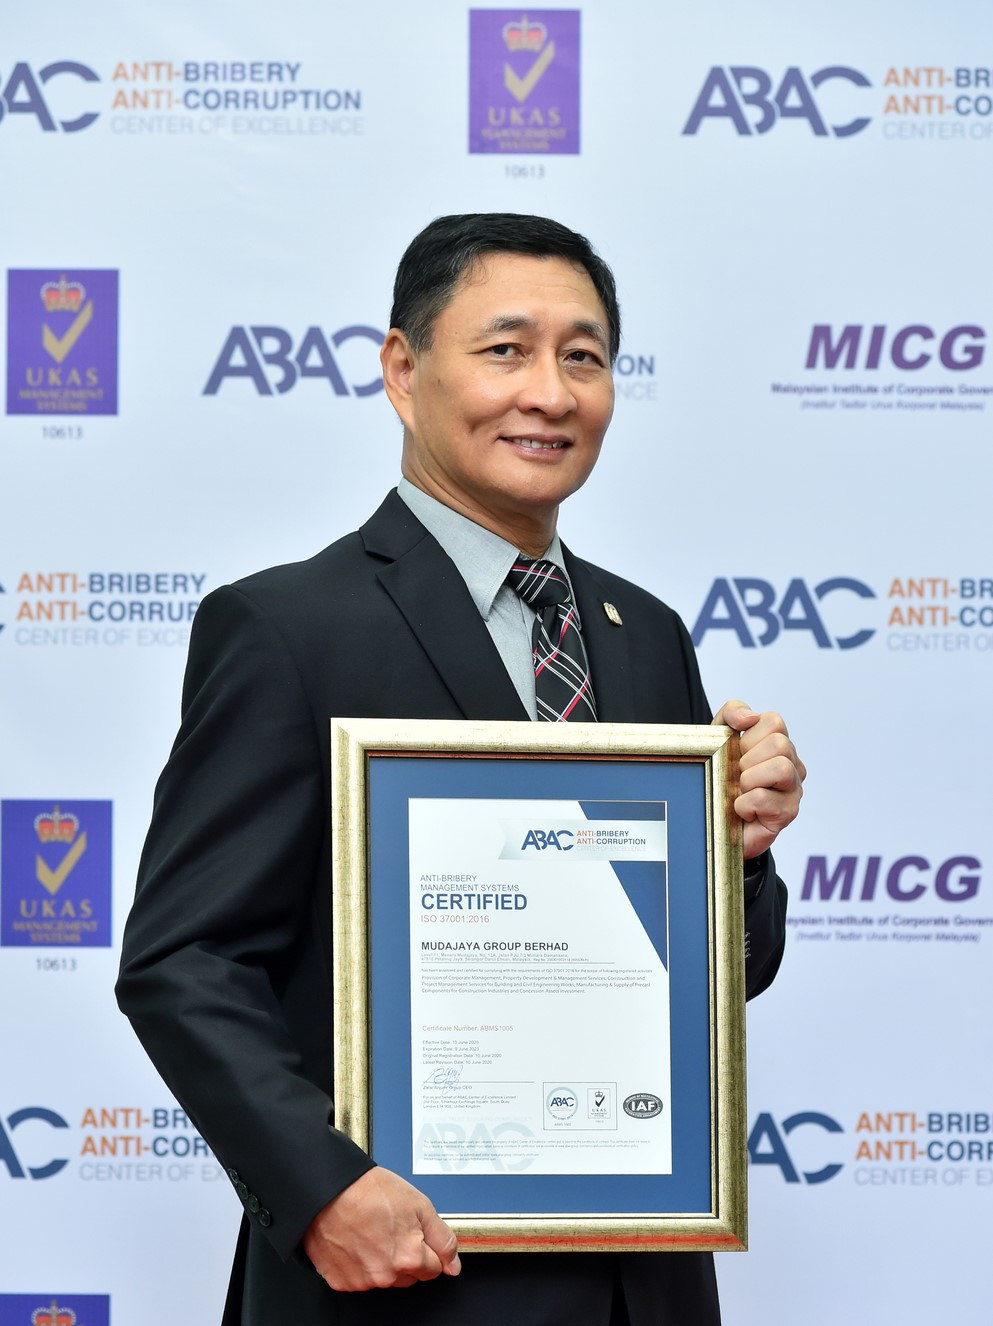 Malaysia's Mudajaya Group certified for ISO 37001 Anti-Bribery Management System by ABAC Center of Excellence